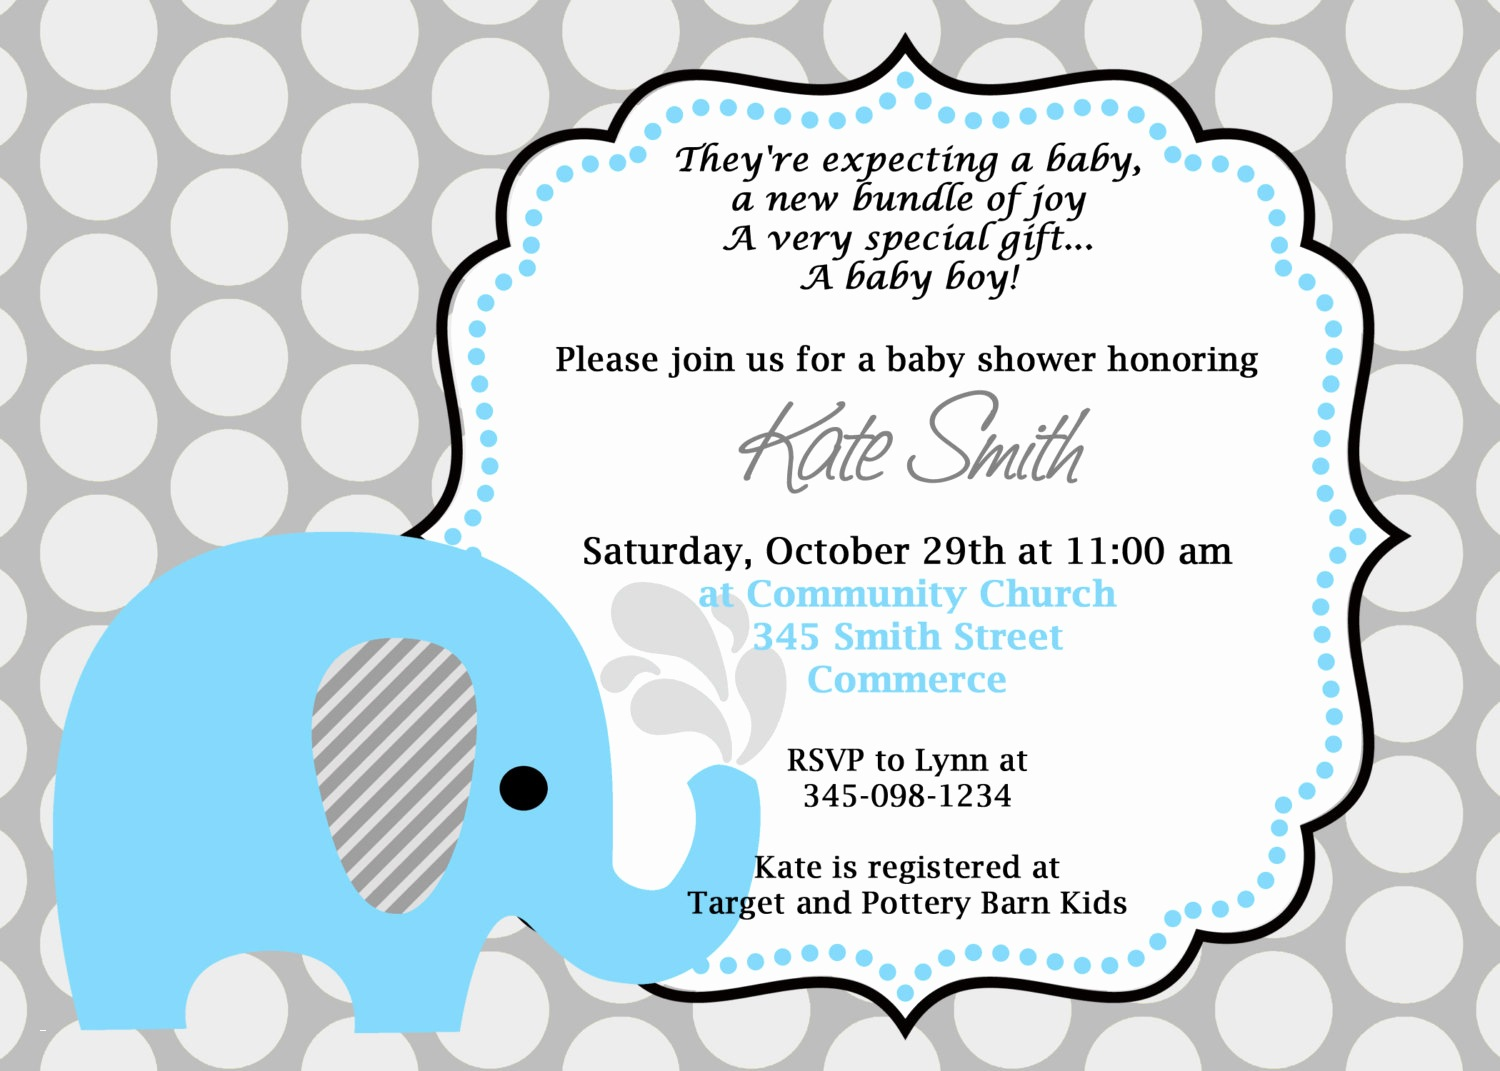 Full Size of Baby Shower:inspirational Elephant Baby Shower Invitations Photo Concepts Elephant Baby Shower Invitations As Well As Baby Shower Wishes With Baby Shower Cards For Boy Plus Baby Shower Game Ideas Together With Baby Shower Lunch Menu